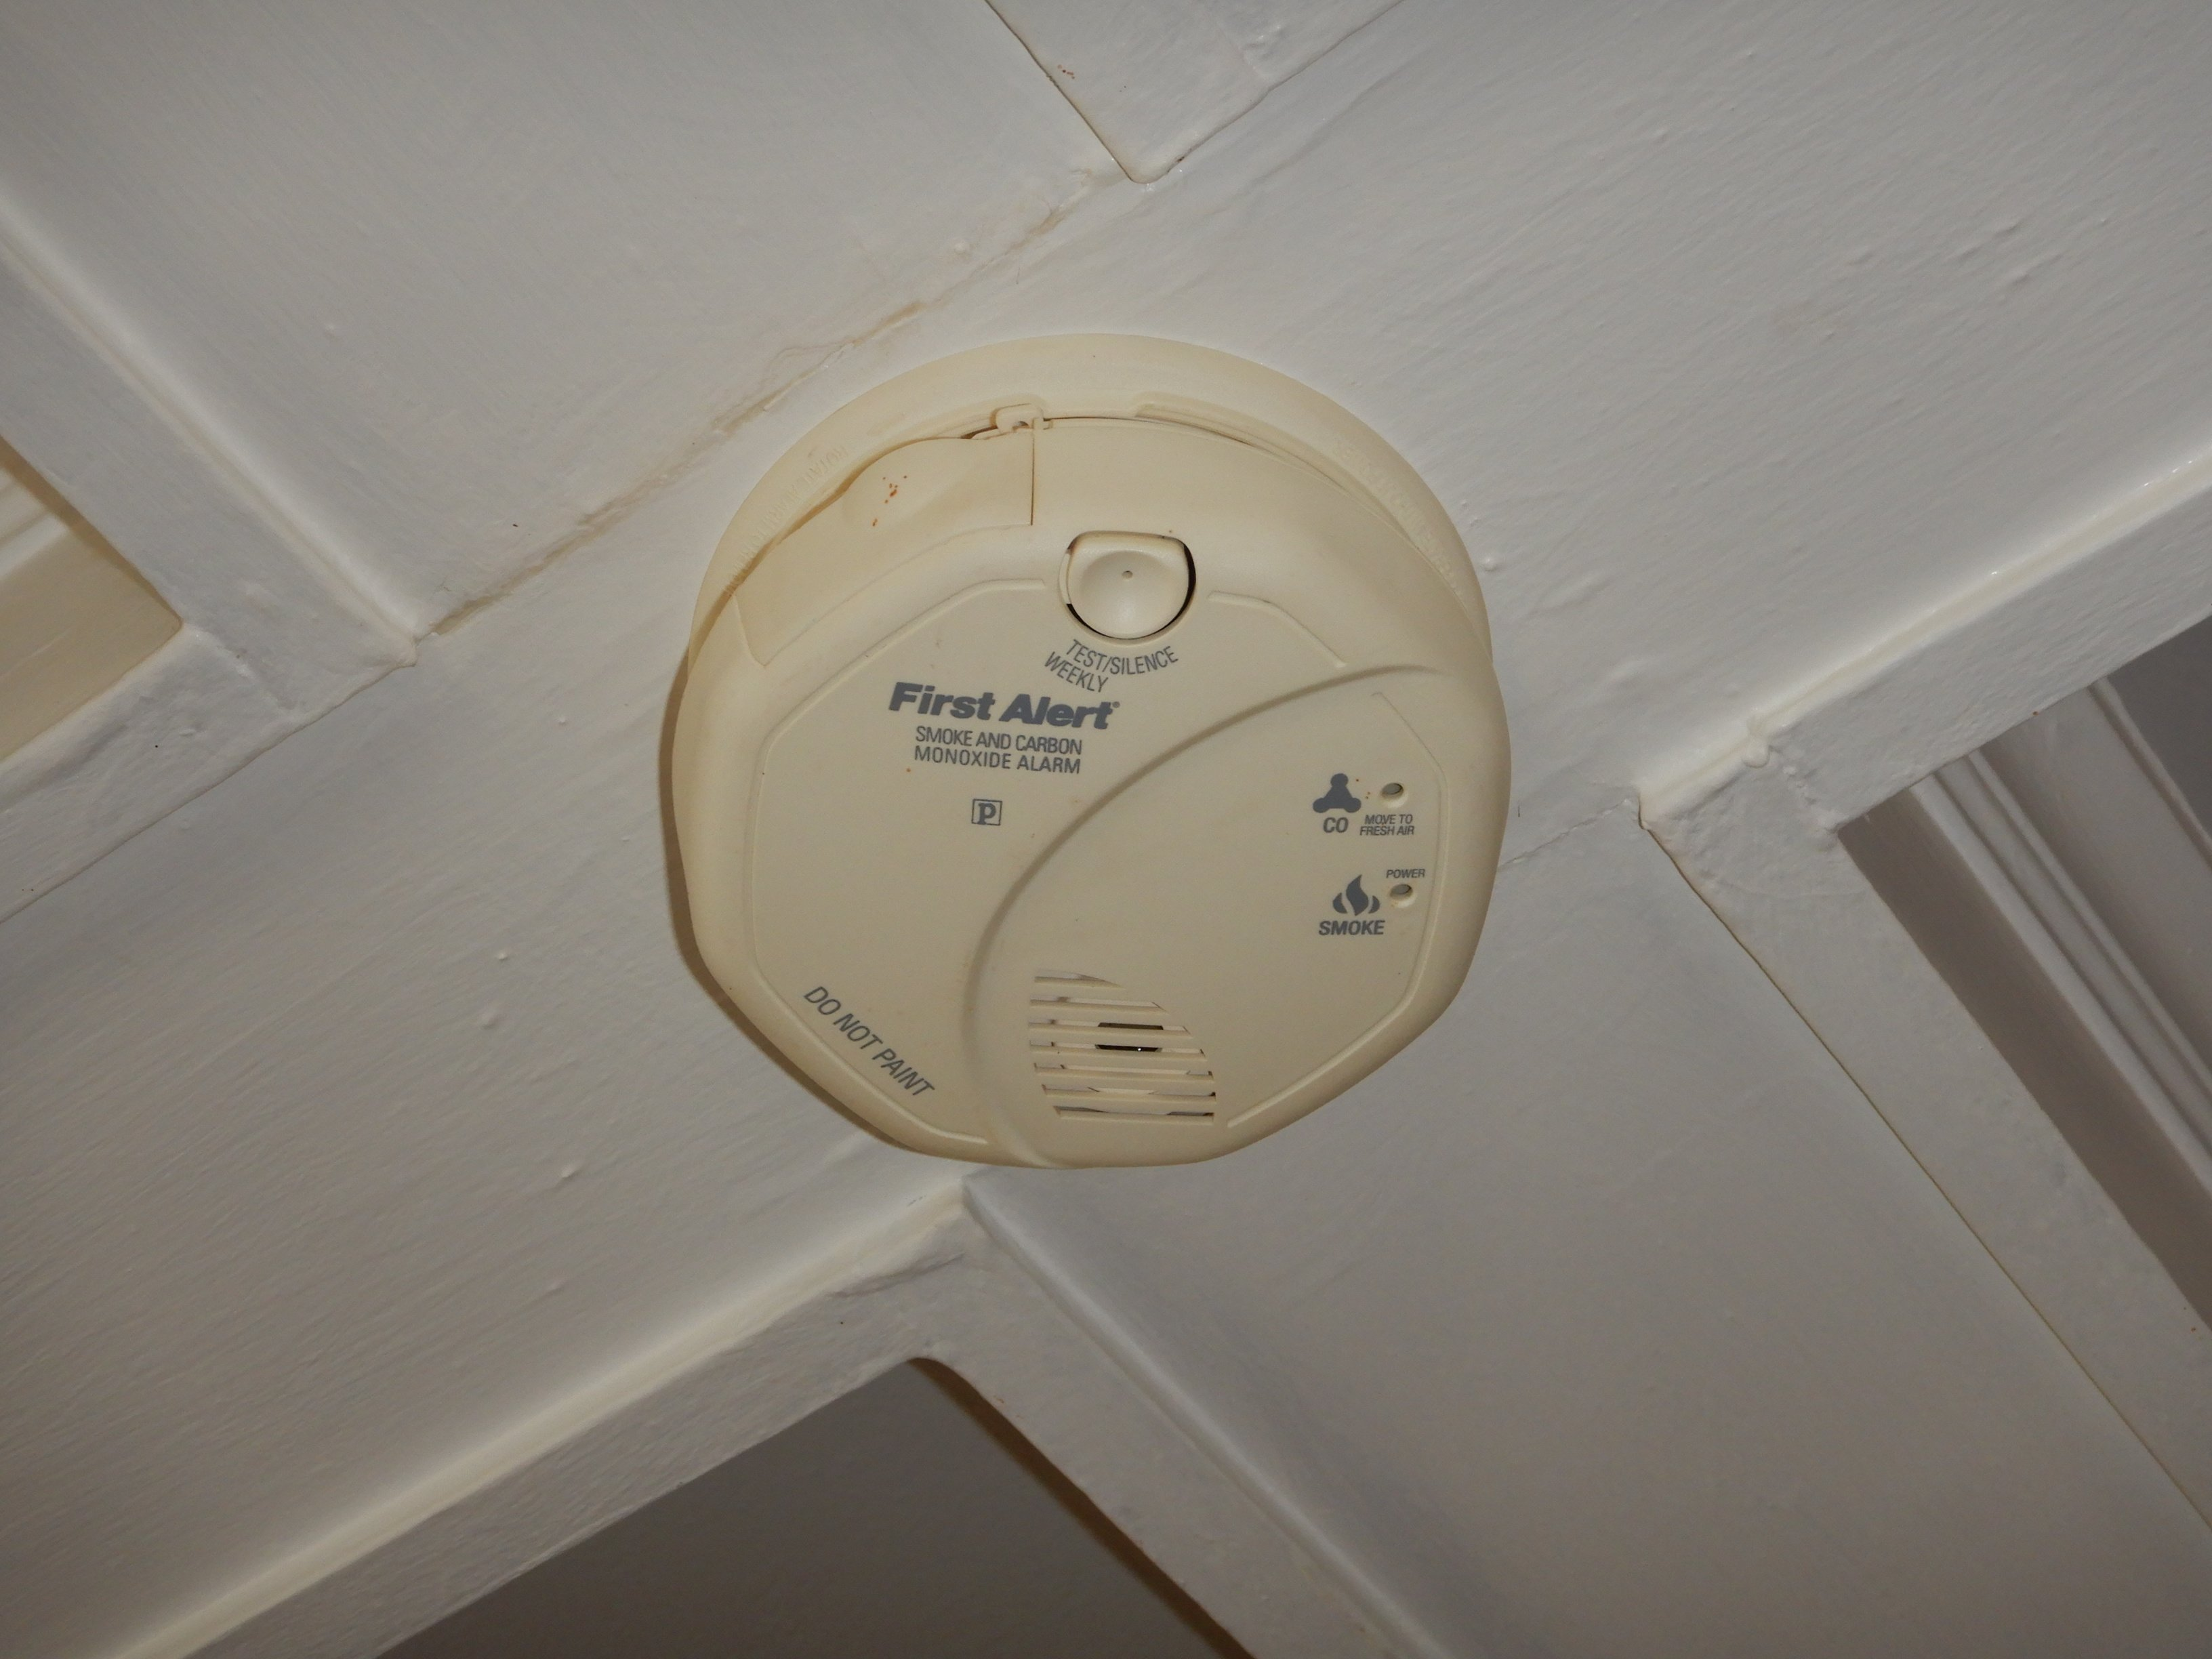 Wiring 3 Wire Smoke Detectors Together With Smoke Detector Wiring